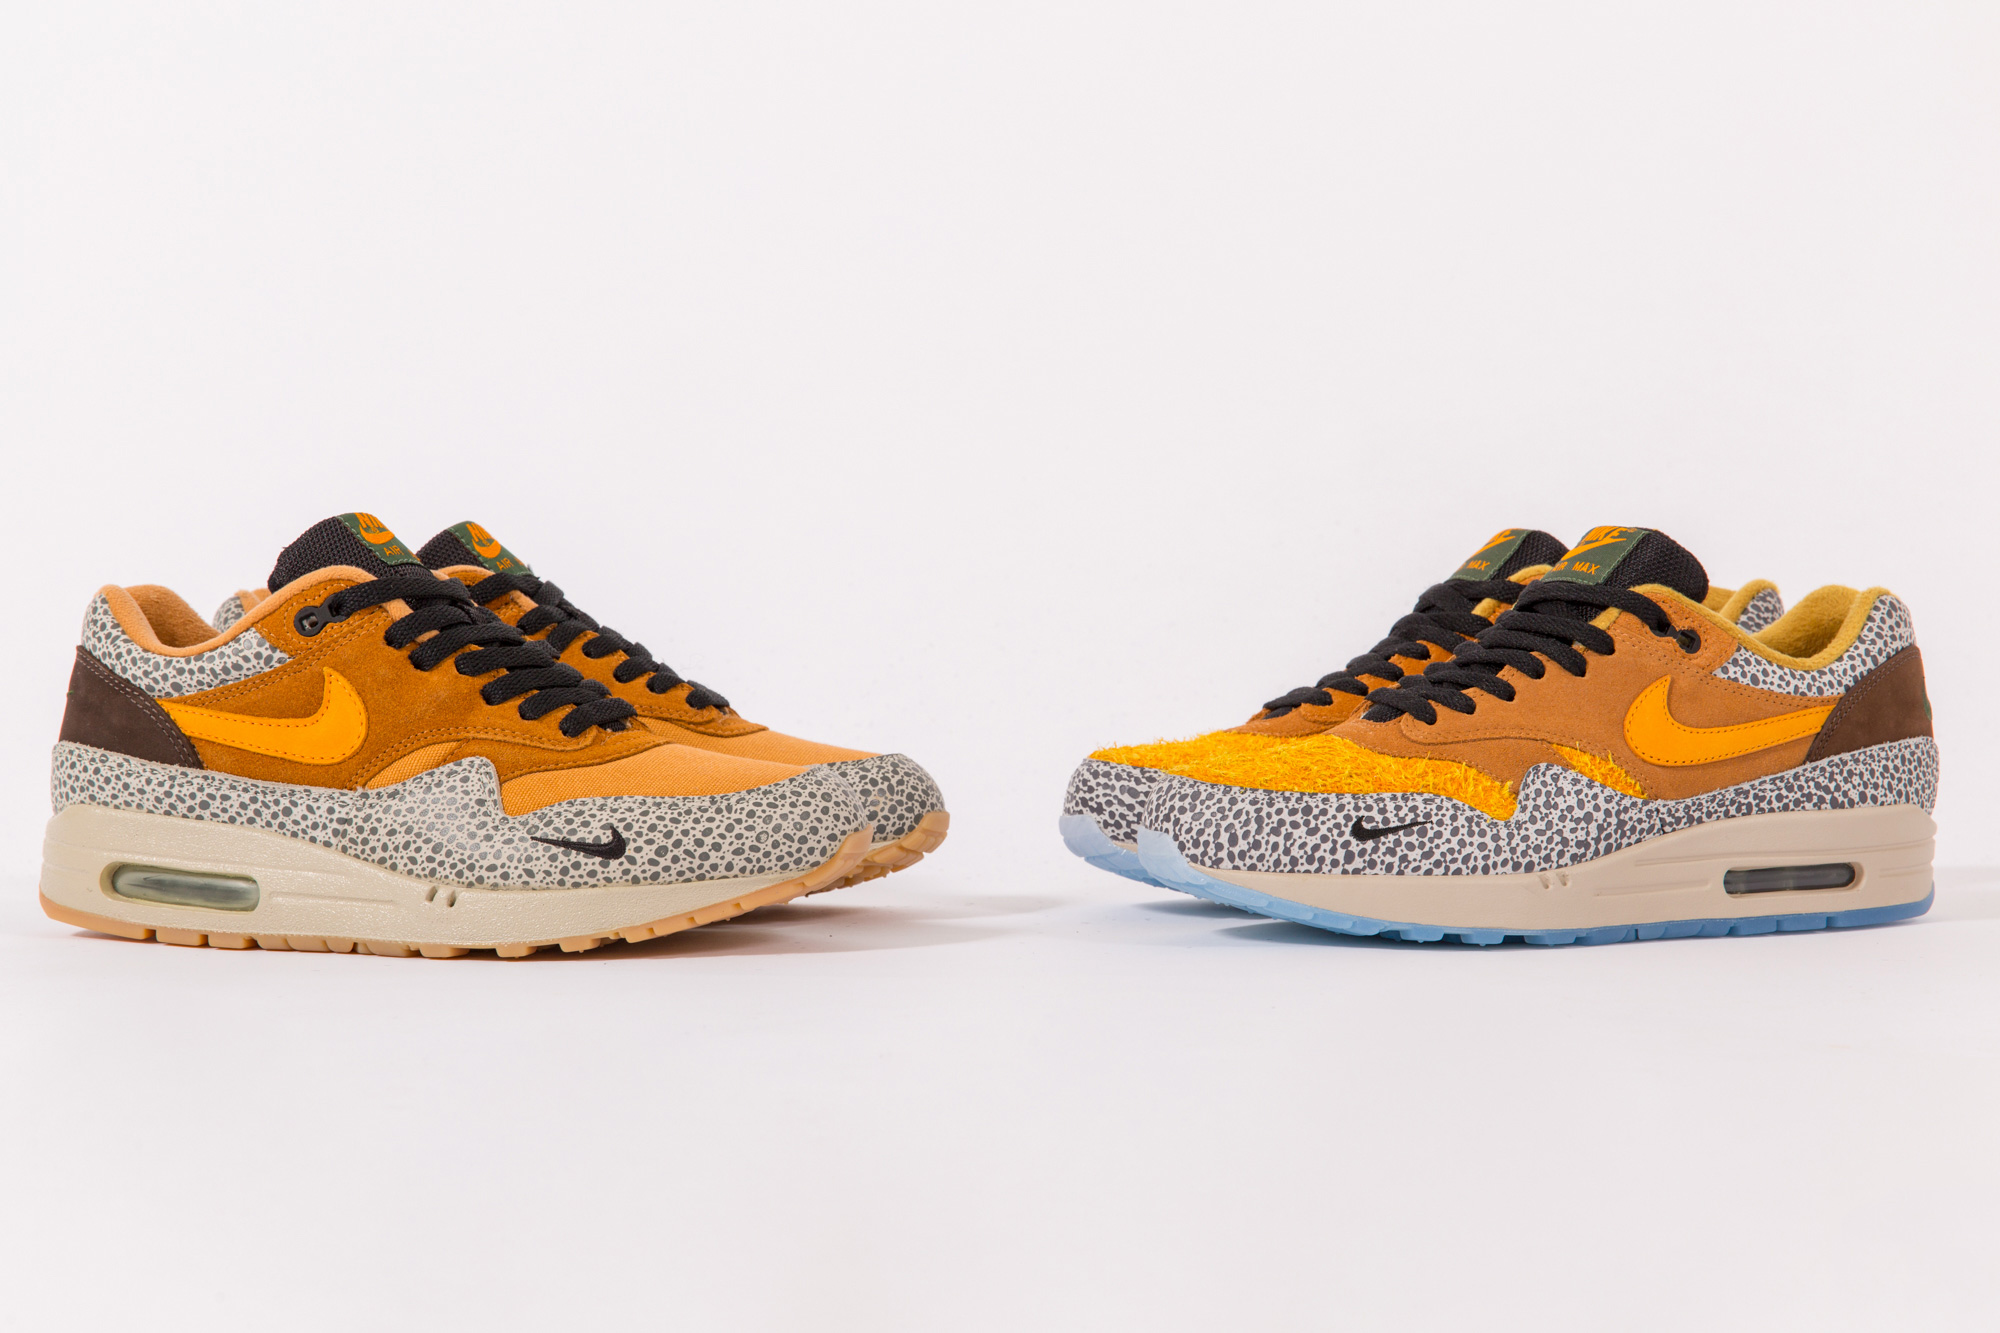 Air Max One Safari quomuwa8